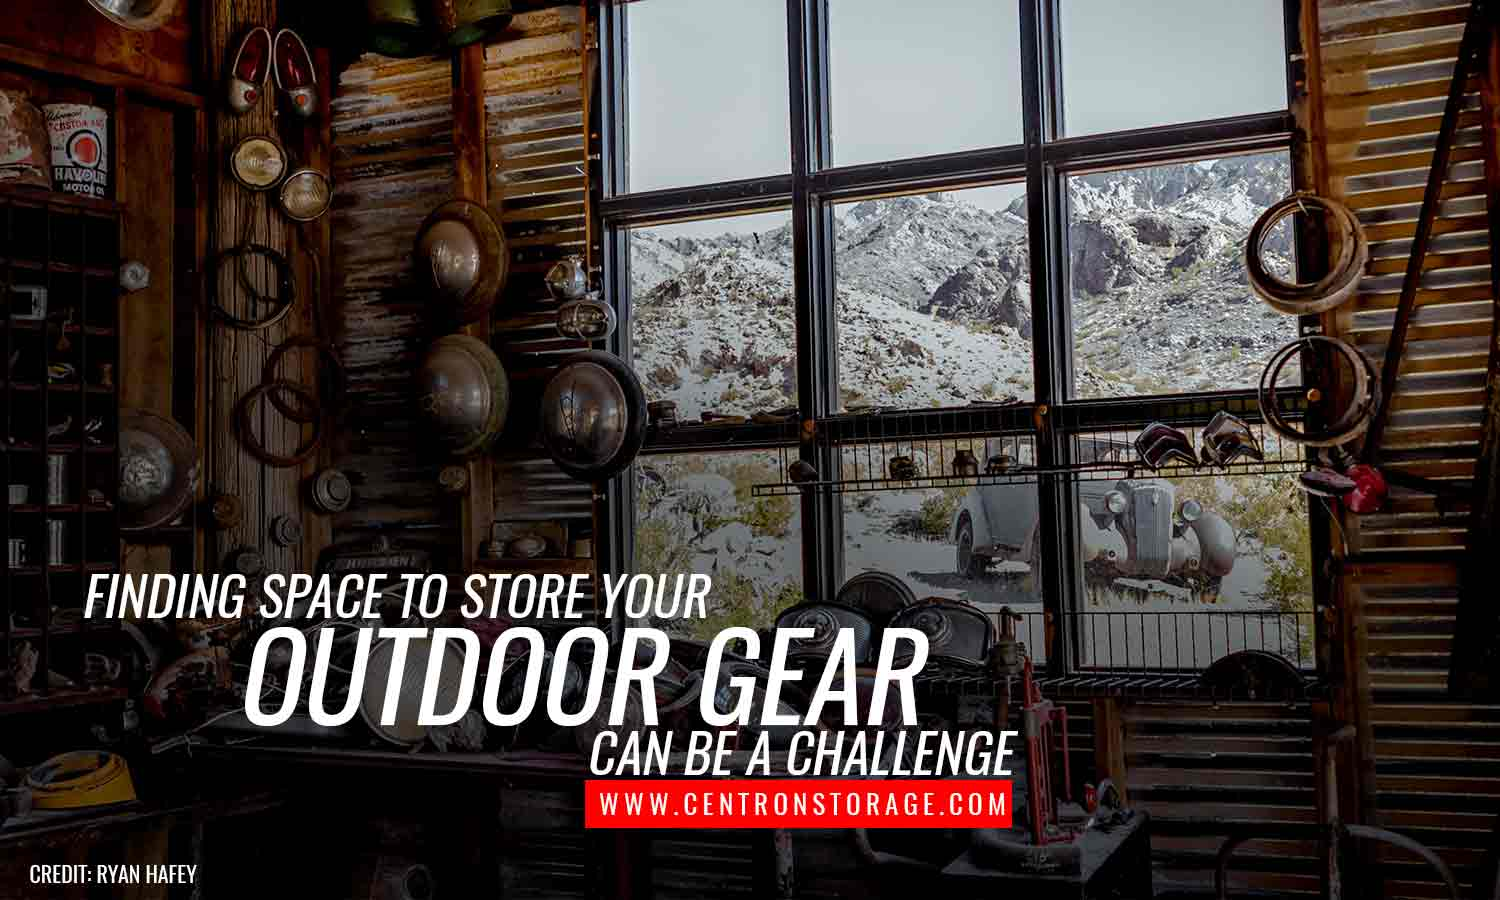 Finding space to store your outdoor gear can be a challenge